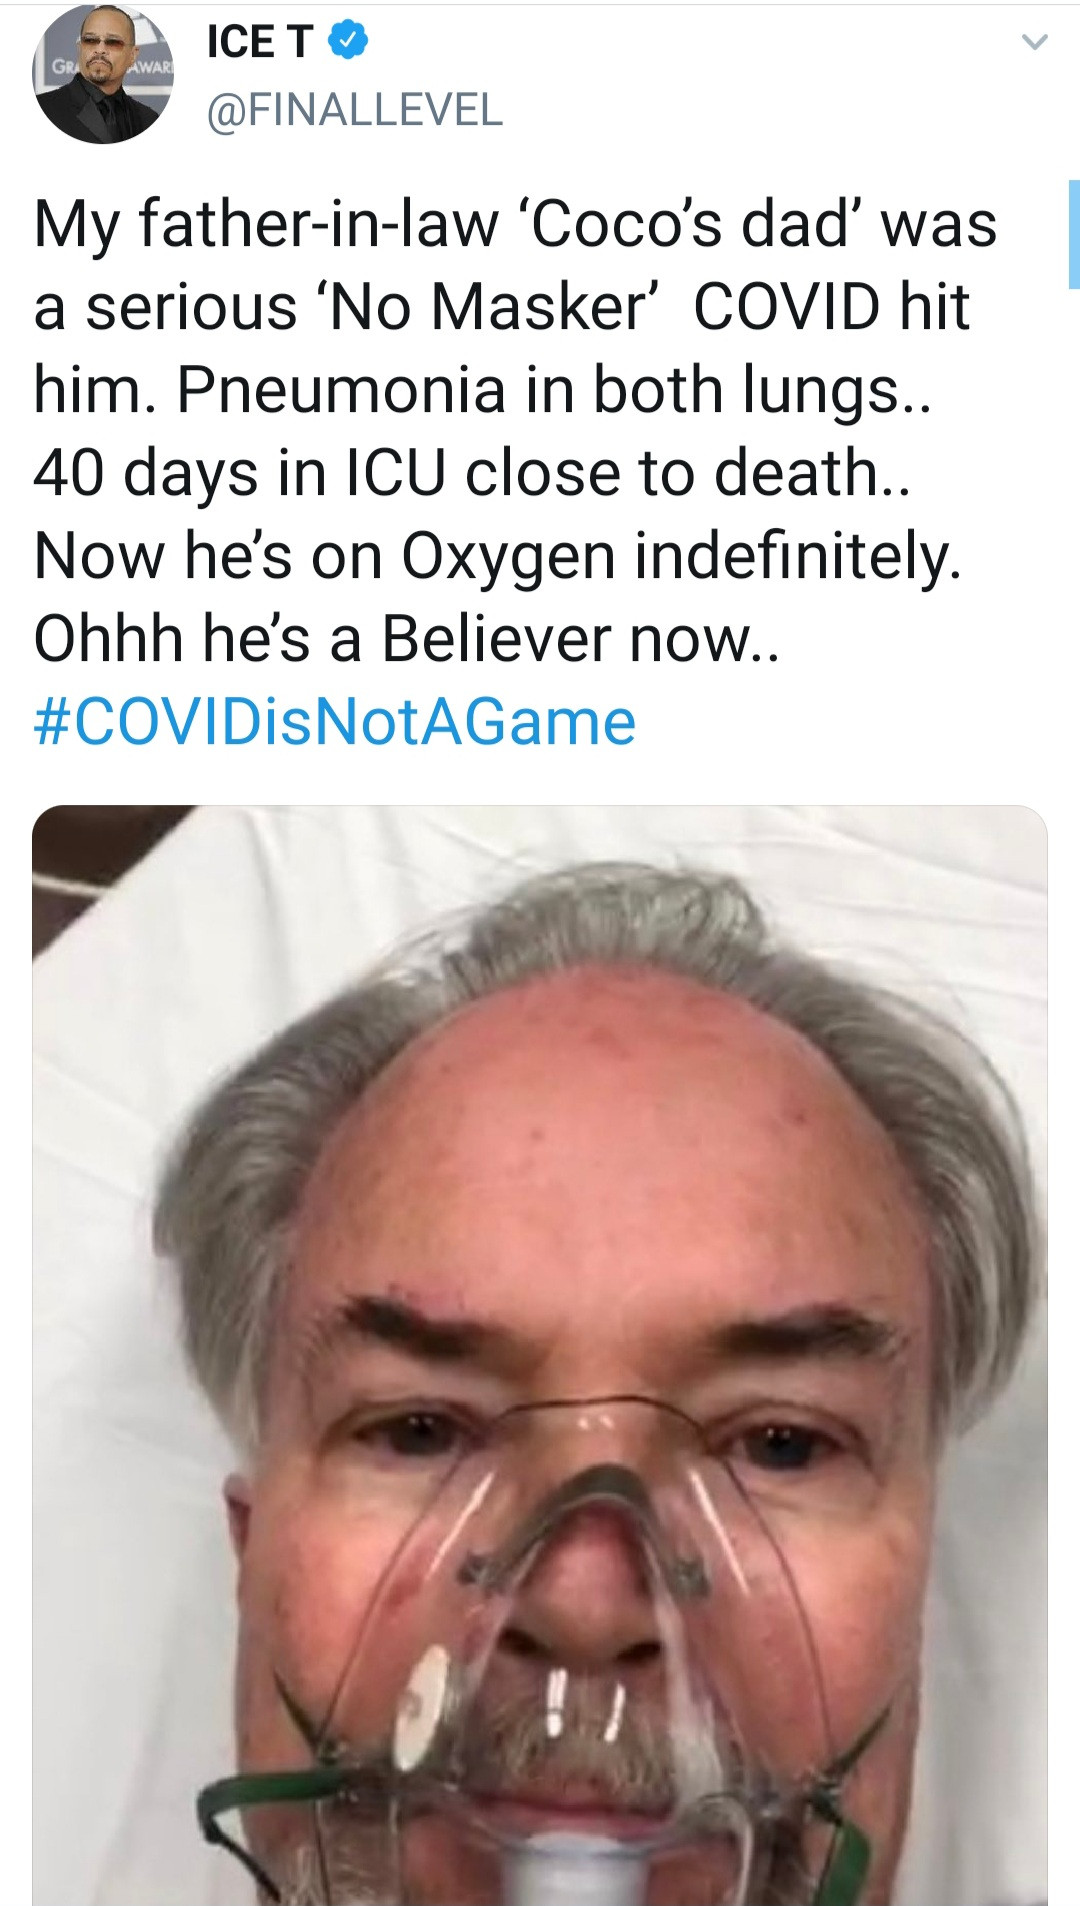 Ice T reminds followers about the severity of Covid-19 by sharing his father-in-law